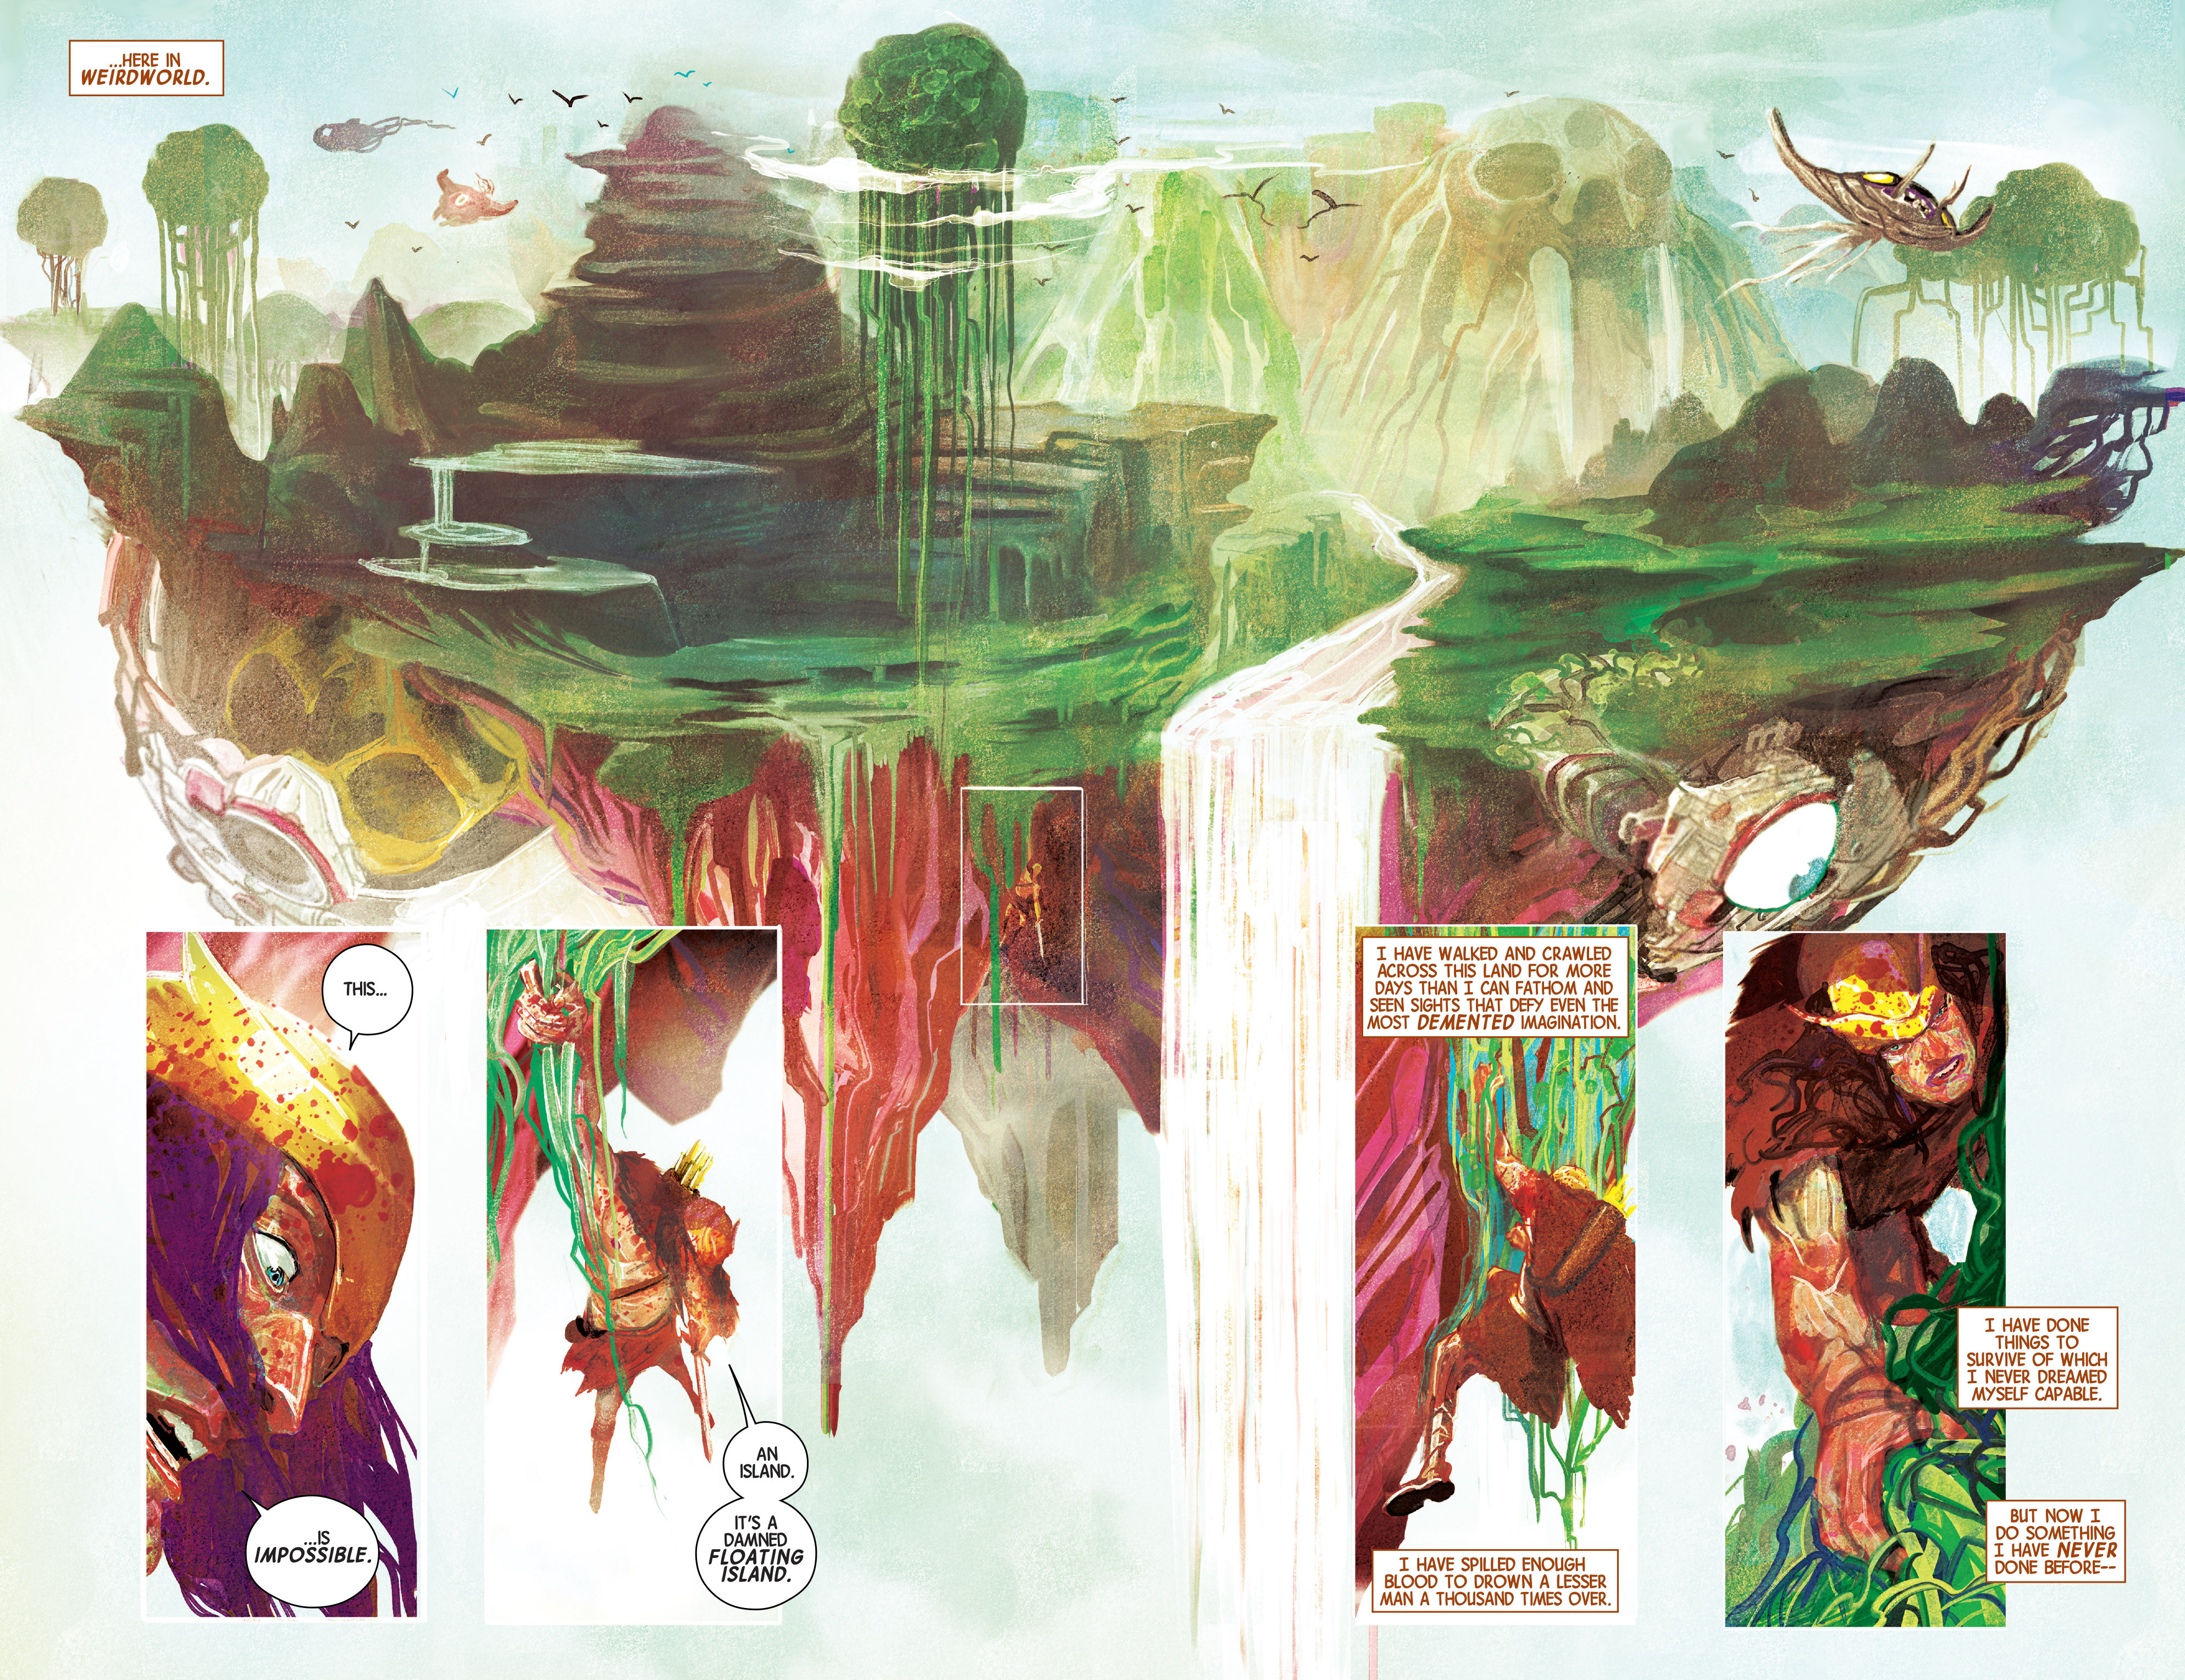 Weirdworld (Battleworld)